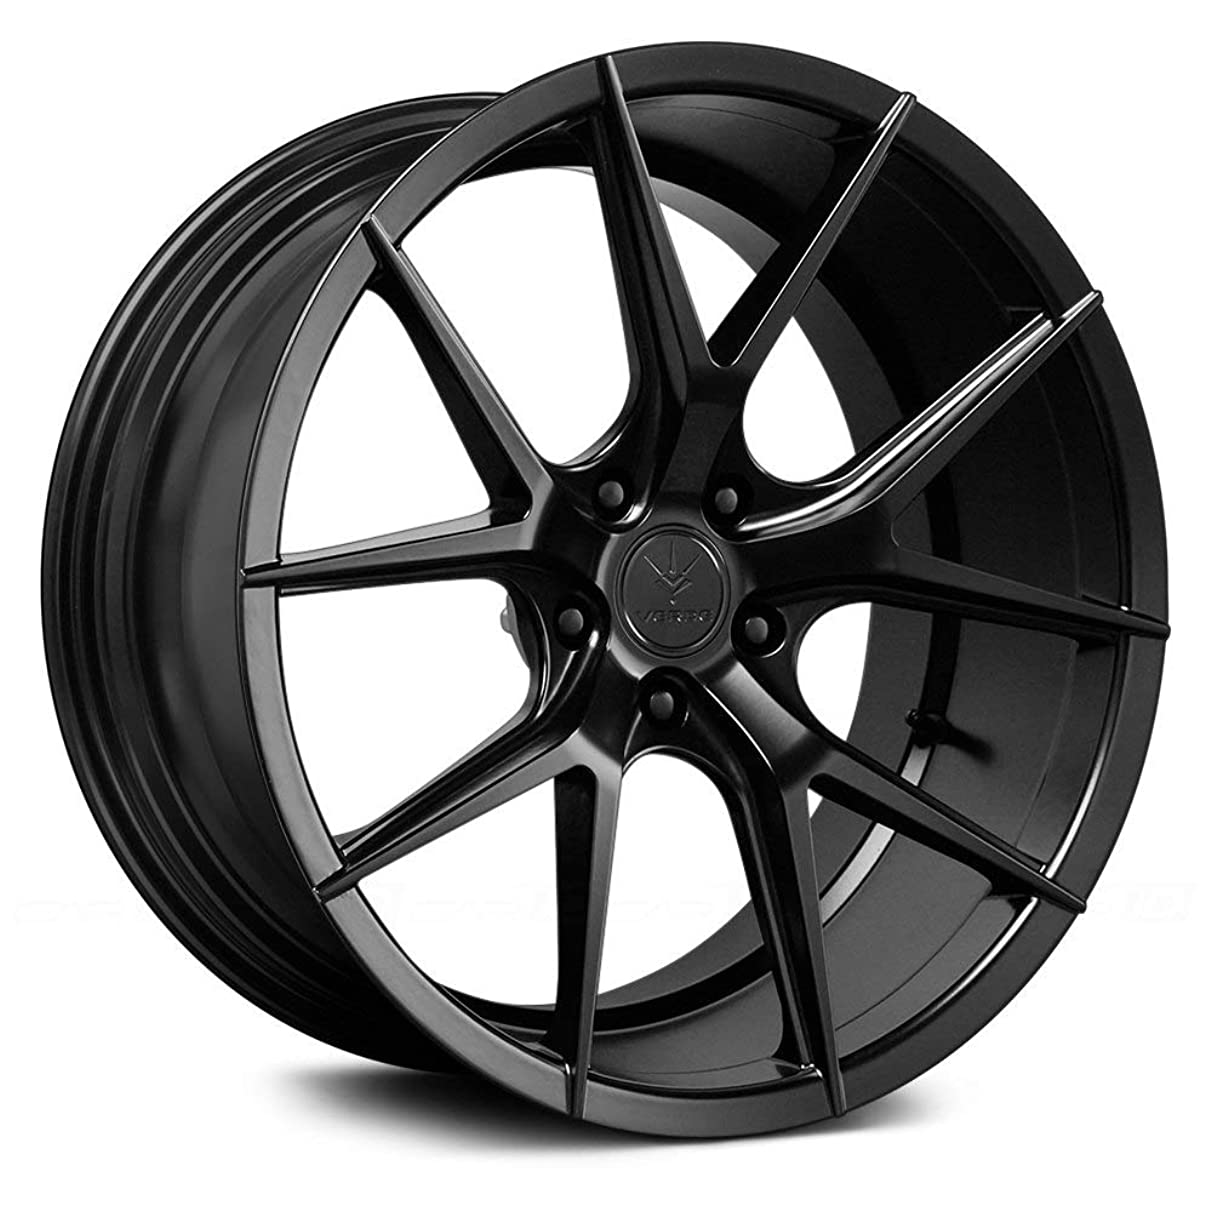 Verde Custom Wheels Axis Satin Black Wheel with Painted Finish (20 x 10.5 inches /5 x 115 mm, 25 mm Offset)